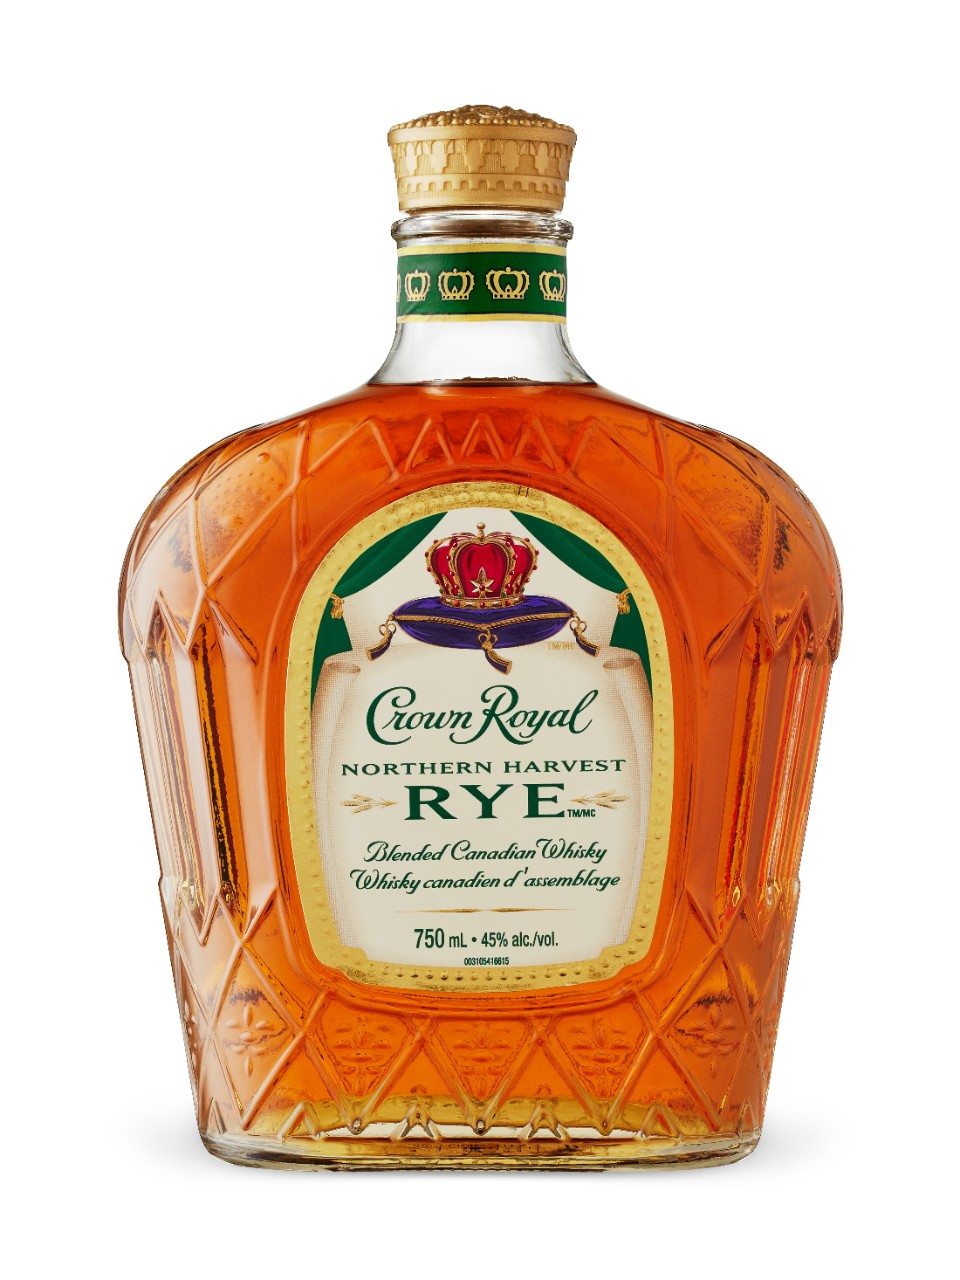 Crown Royal Northern Harvest Rye from LCBO